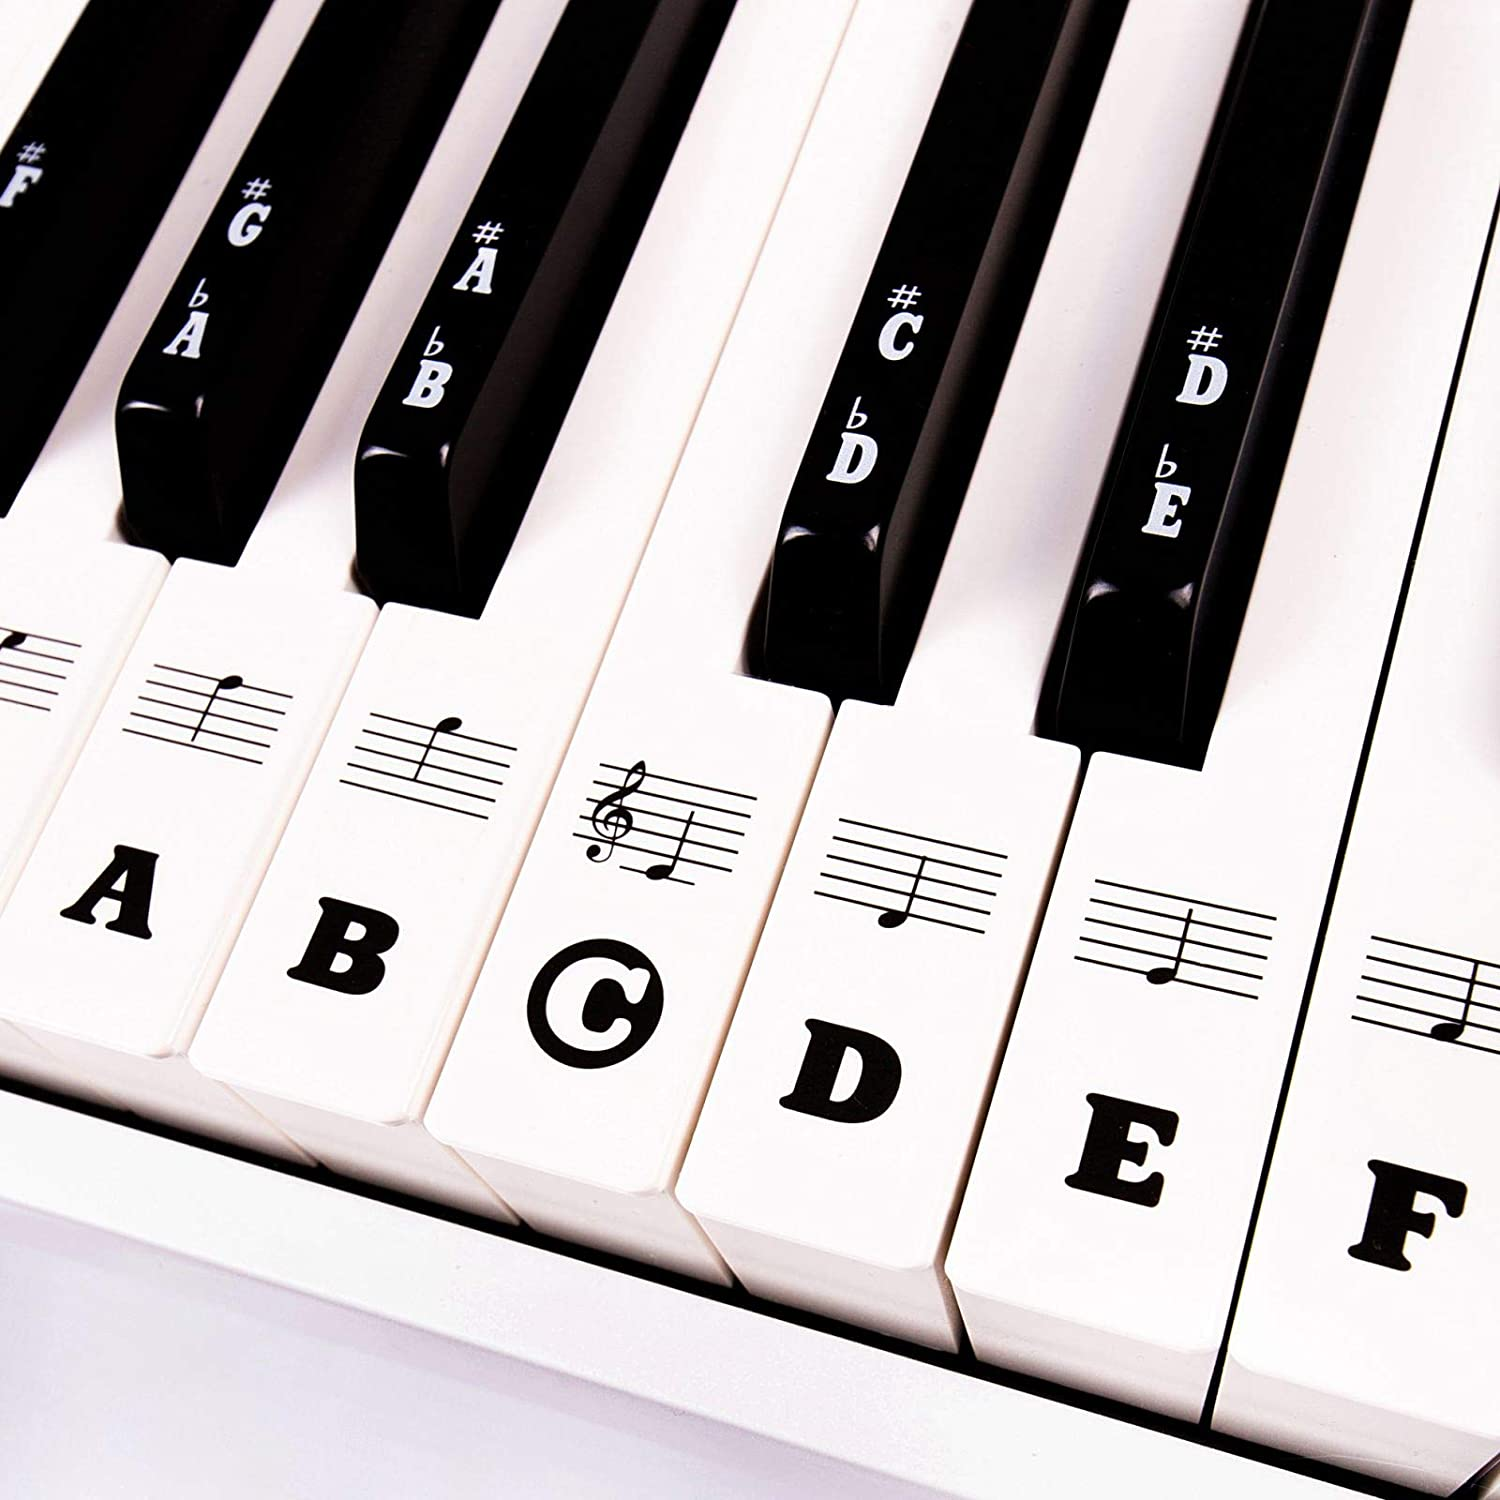 Piano Keyboard Stickers for Beginners 88/76/61/54/49/37 Keys - Removable, Transparent, Double Layer Coating Piano Stickers - Perfect for Kids, Big Bold Letters, Easy to Install with Cleaning Cloth